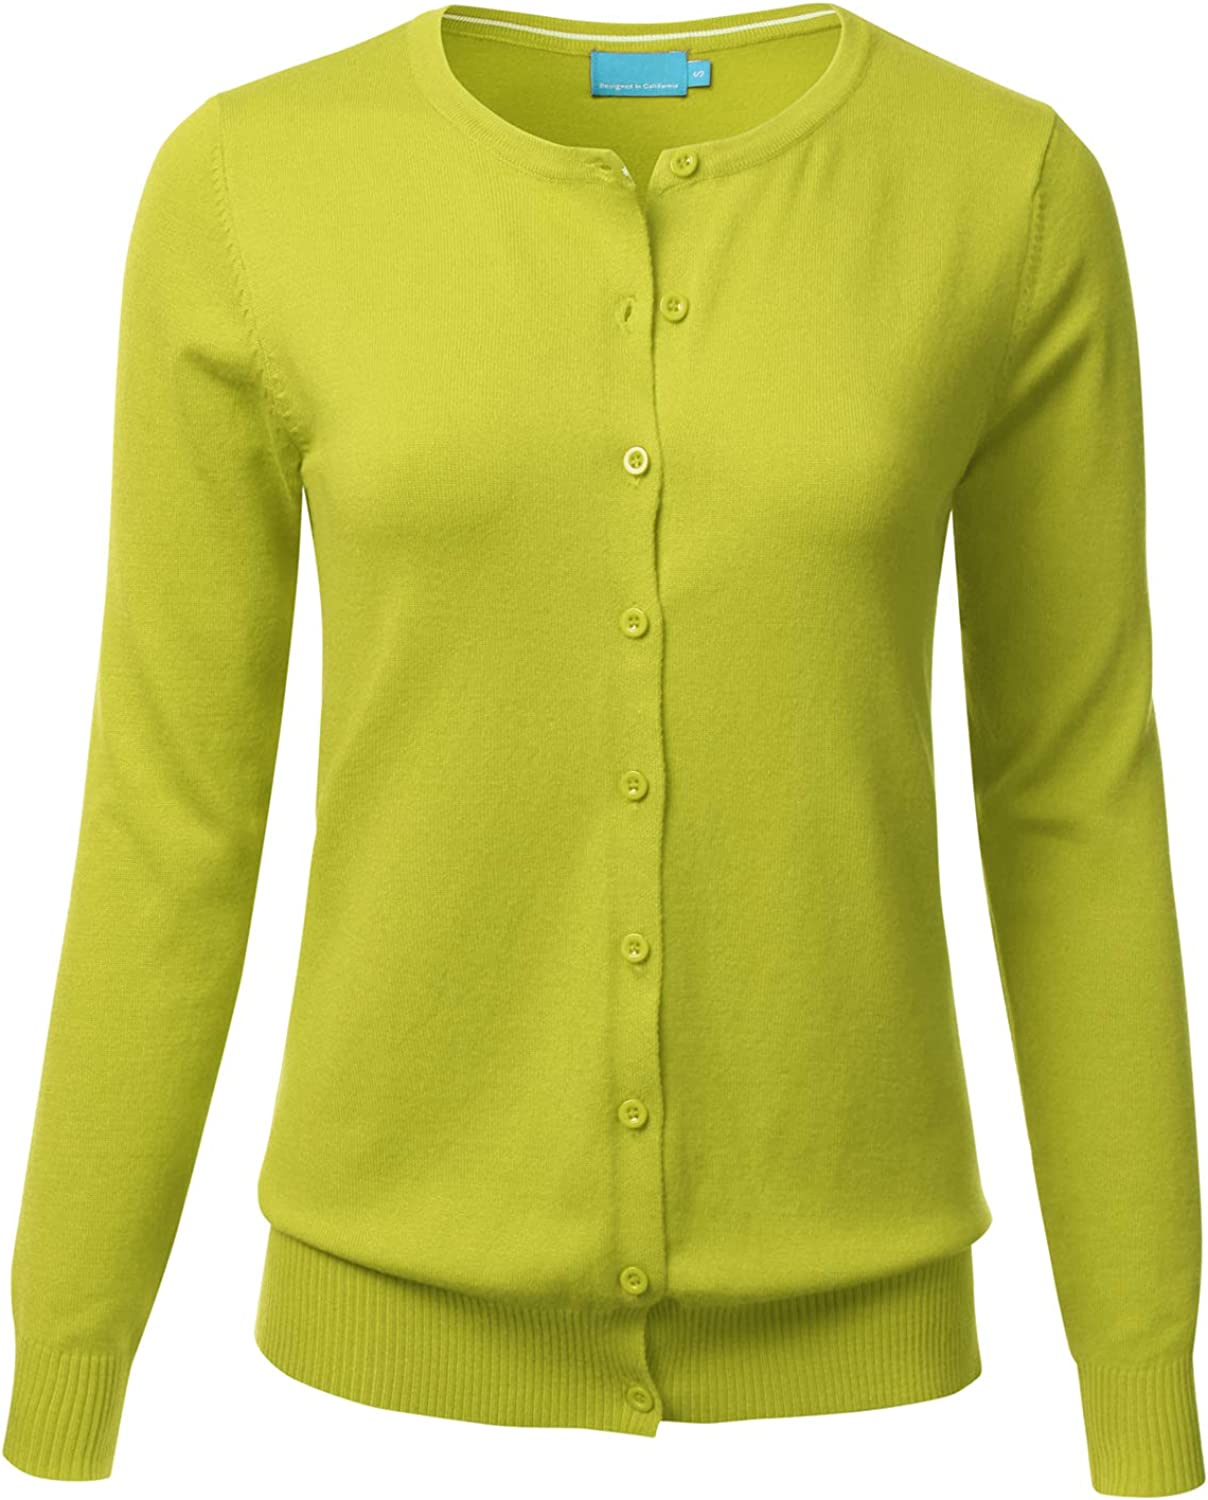 FLORIA Women's Button Down Crew Neck Long Sleeve Soft Knit Cardigan Sweater Lime M